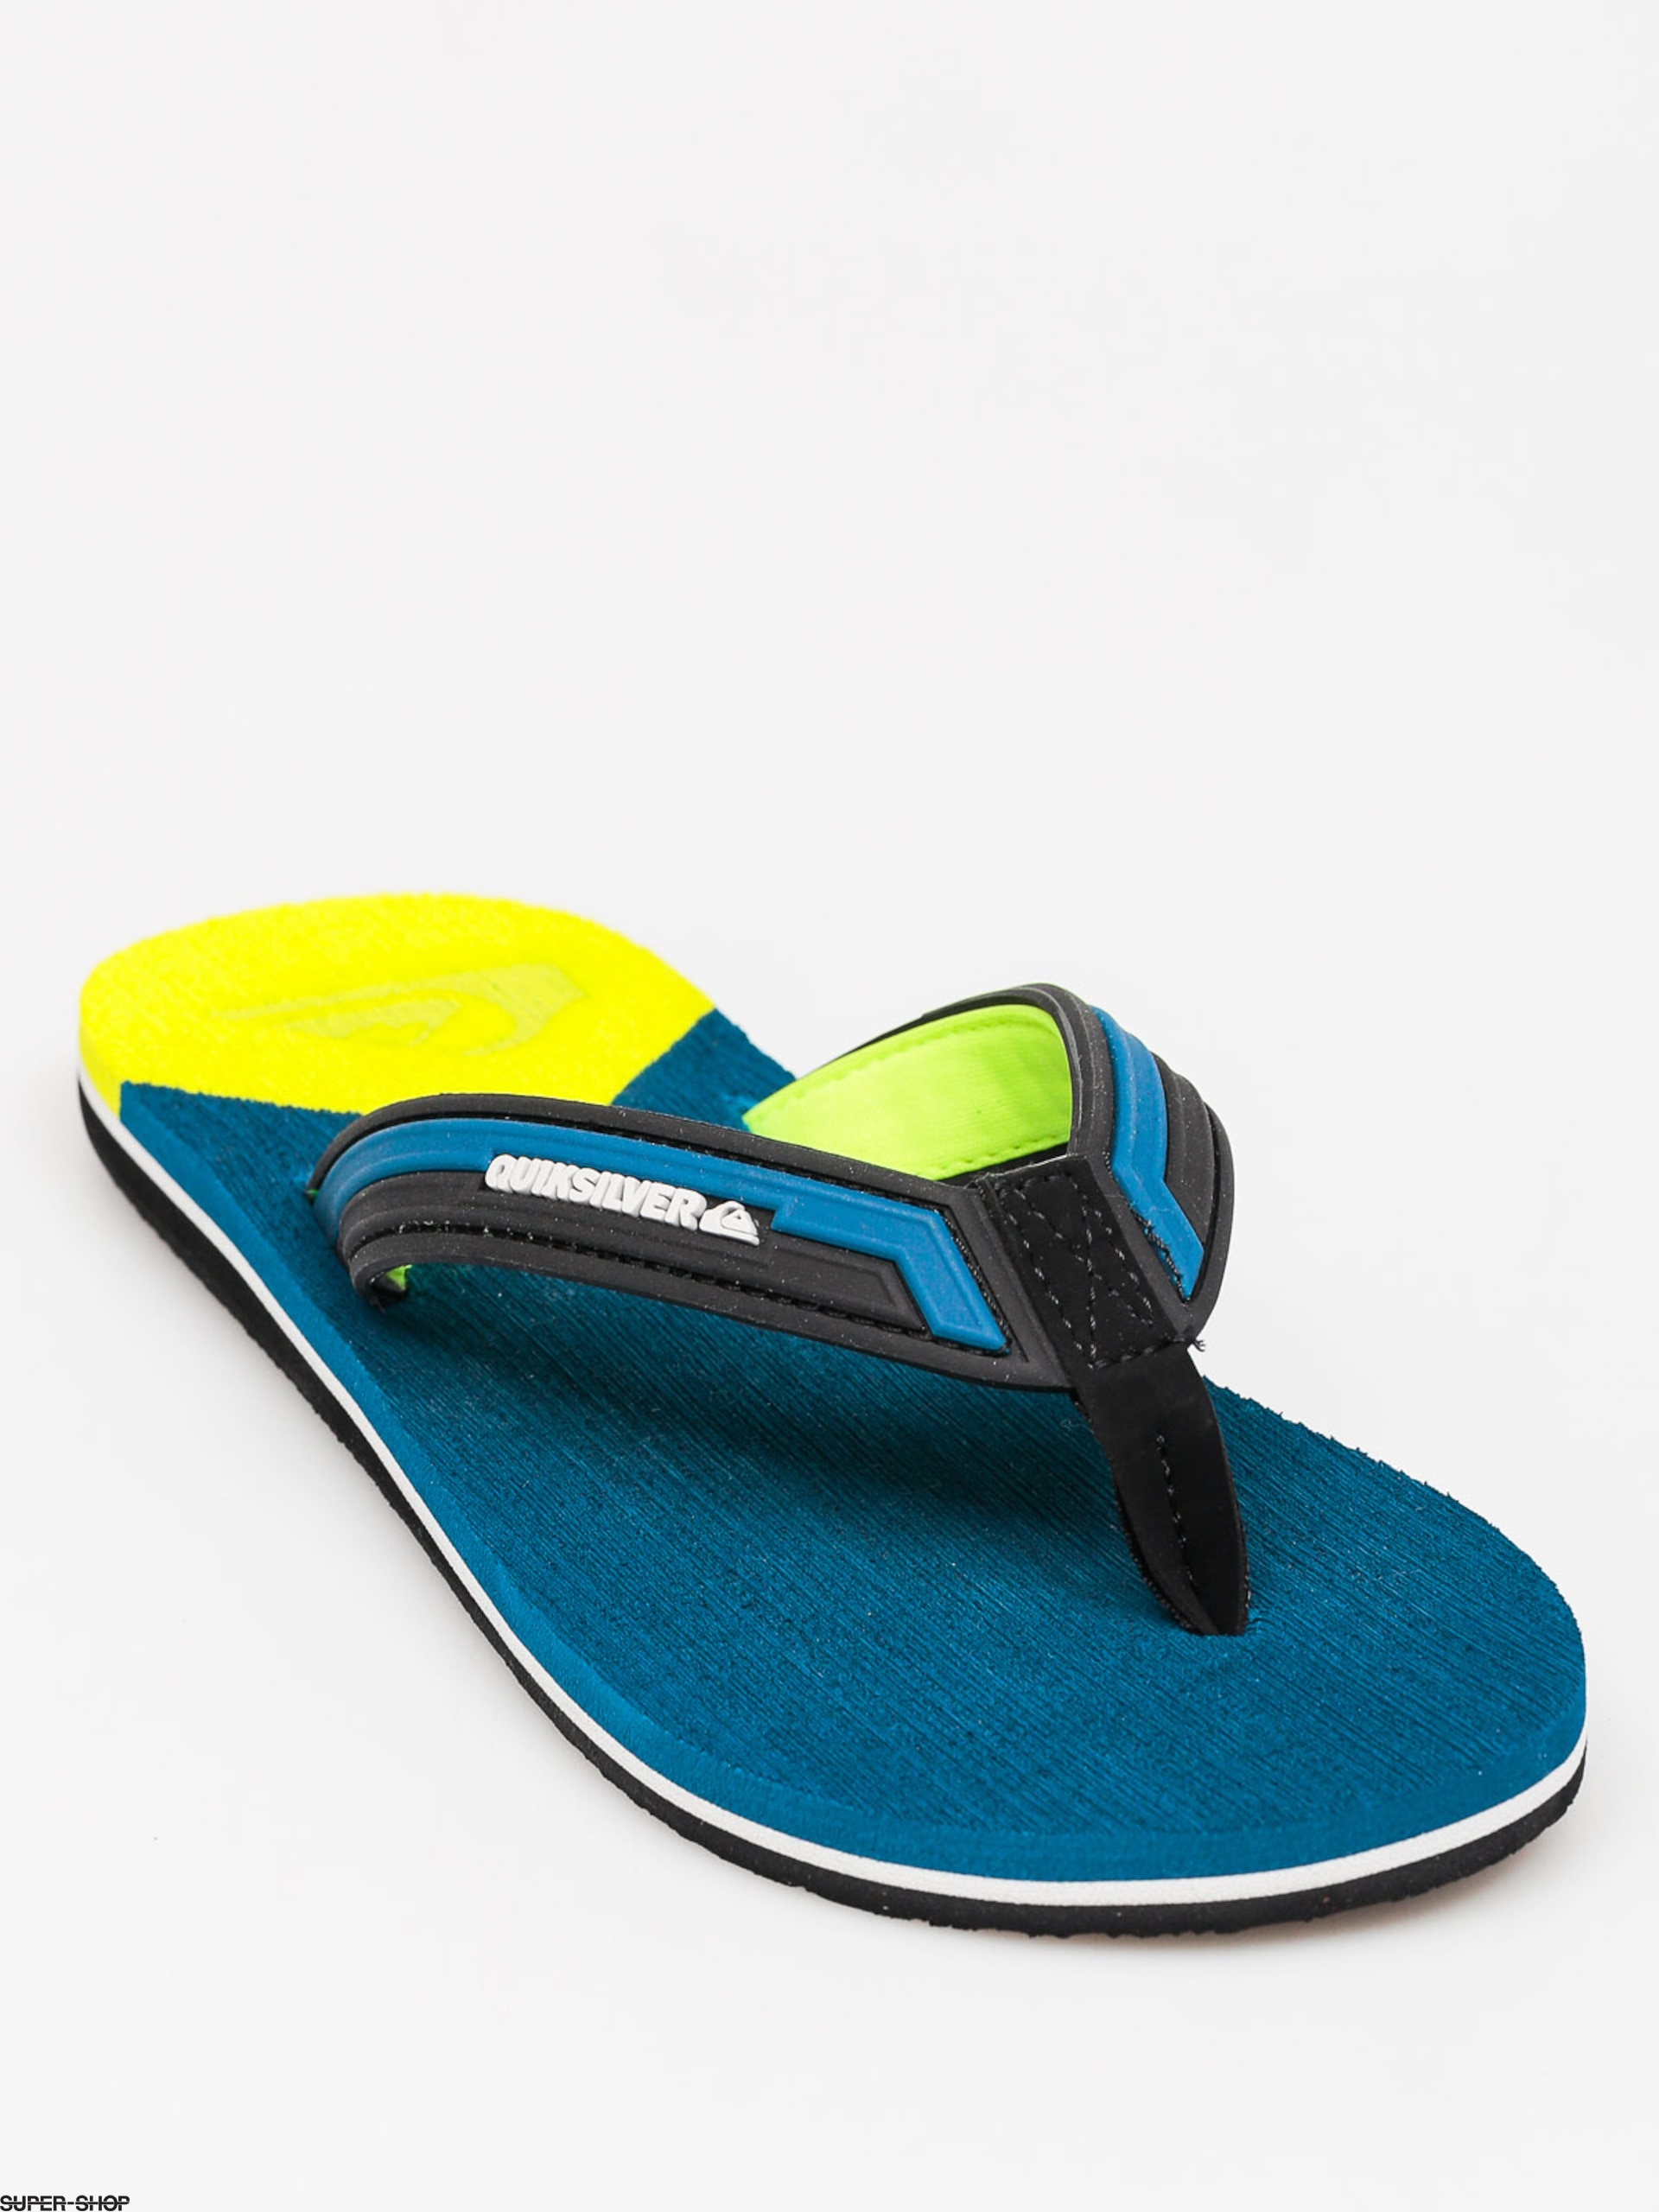 Quiksilver Flip-flops Molokai New Wave (blue/yellow/blue)